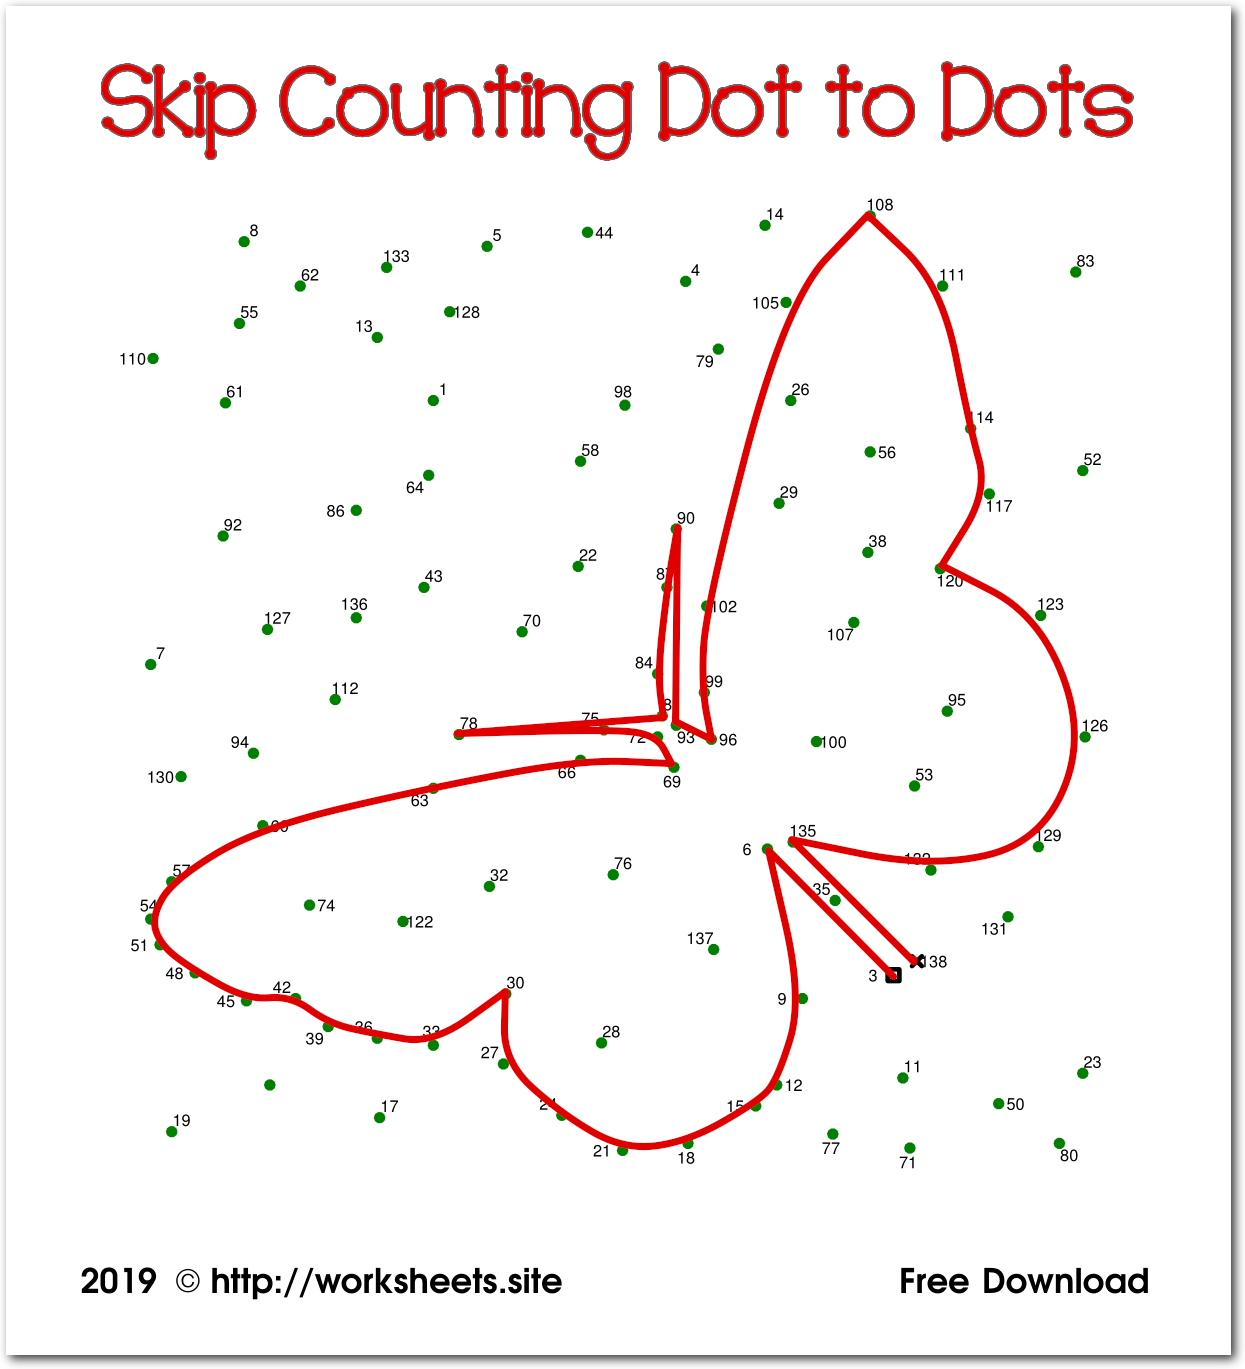 - Skip Counting Dot To Dots